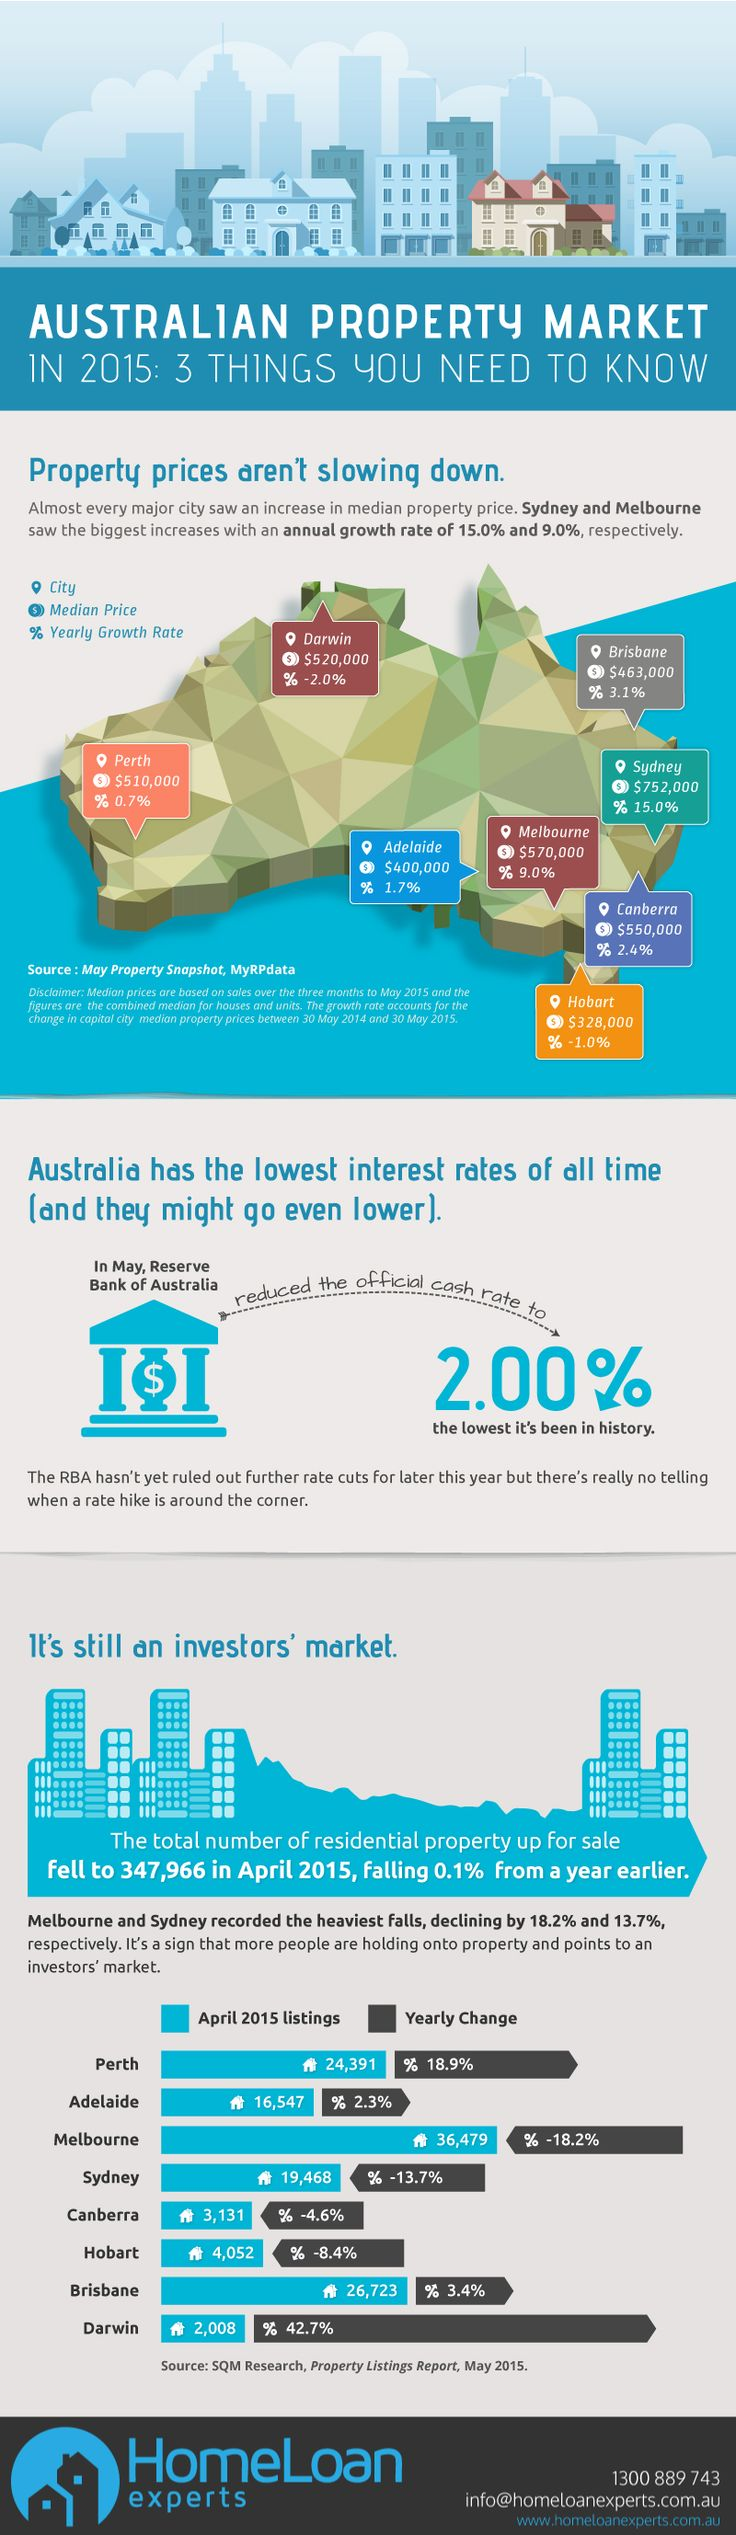 3 Things you need to about the Australian property market in 2015! #tips #infographic #price